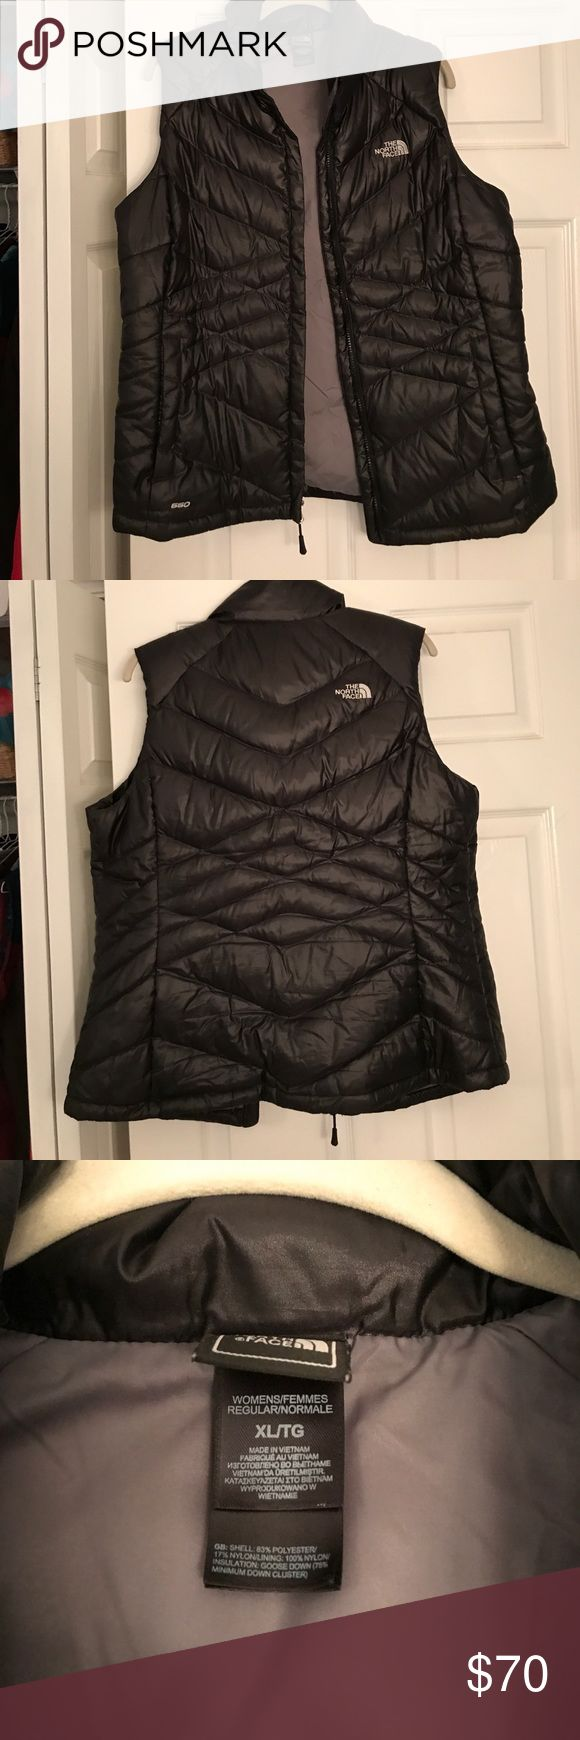 Northface Vest Black puffy vest The North Face Jackets & Coats Vests